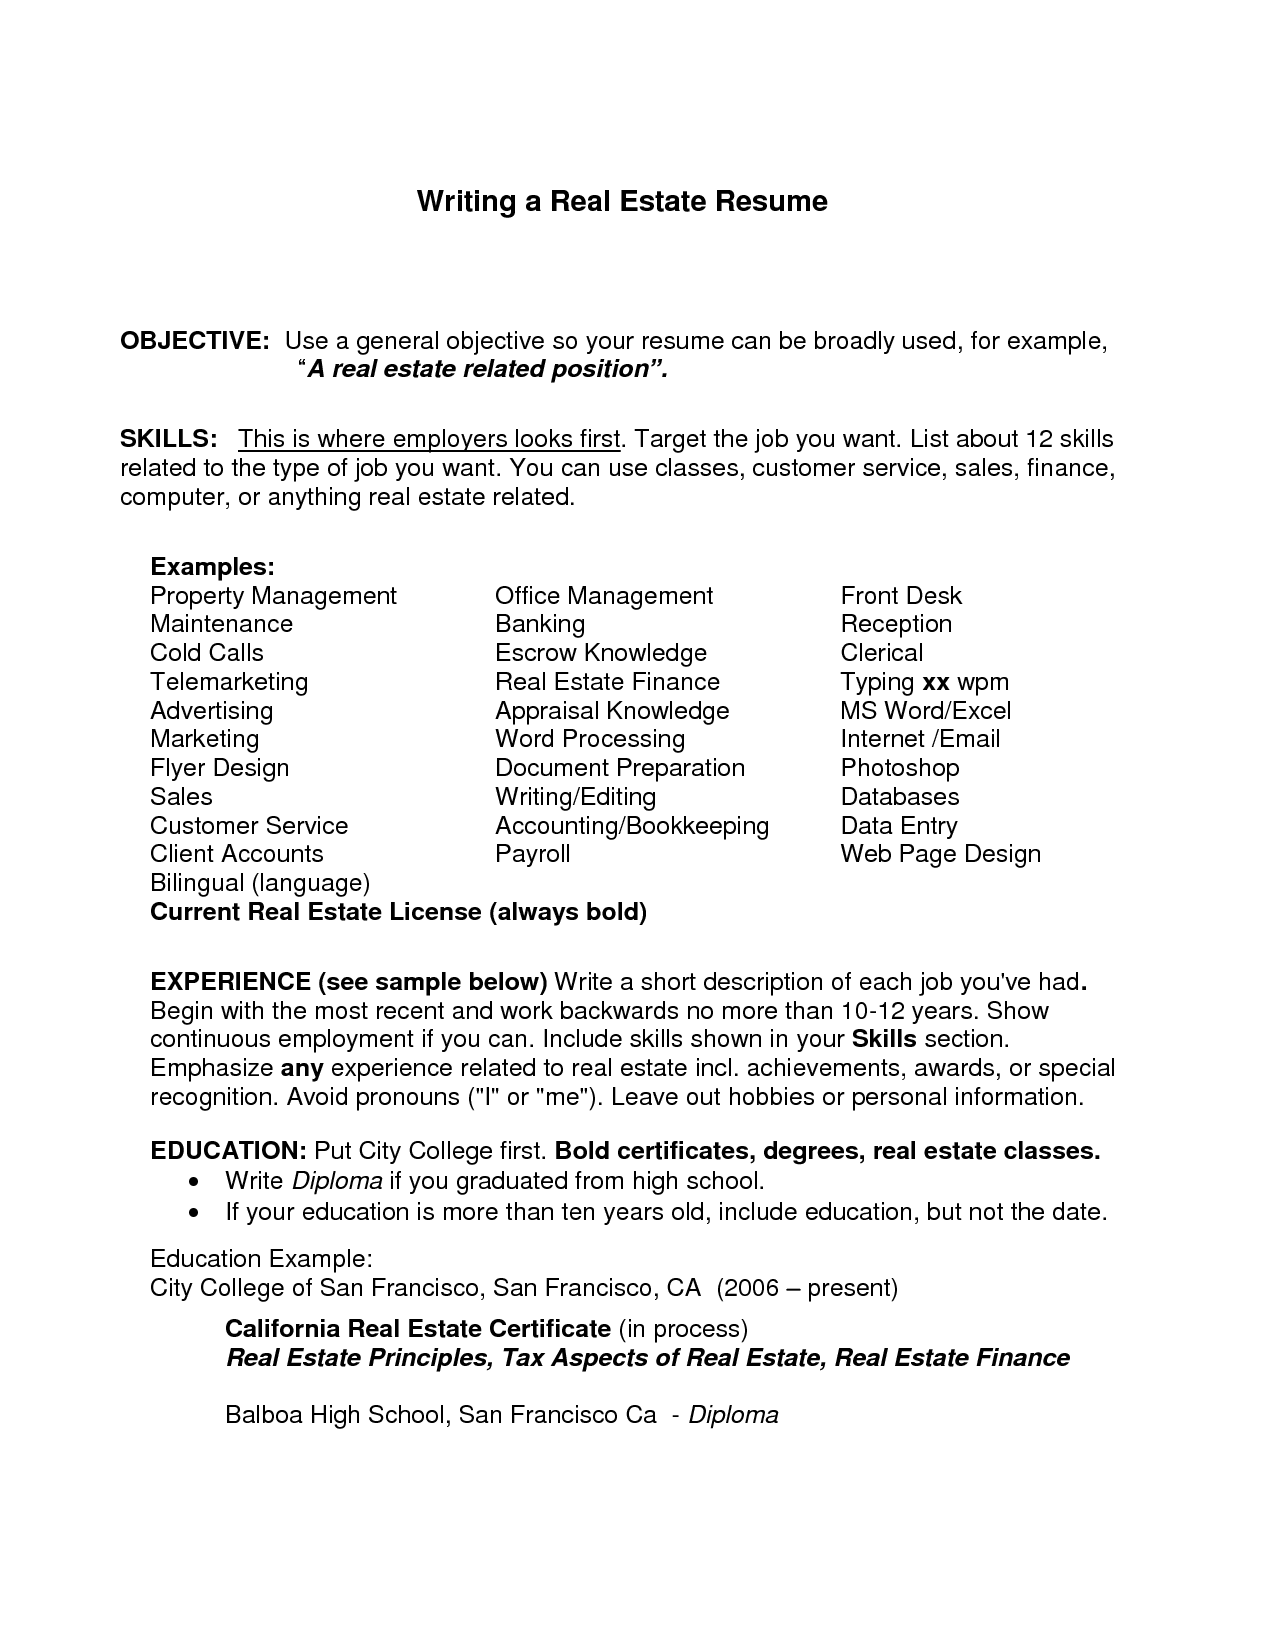 General Resume Objective Examples. Job Resume Objective Examples  Job Objective Examples